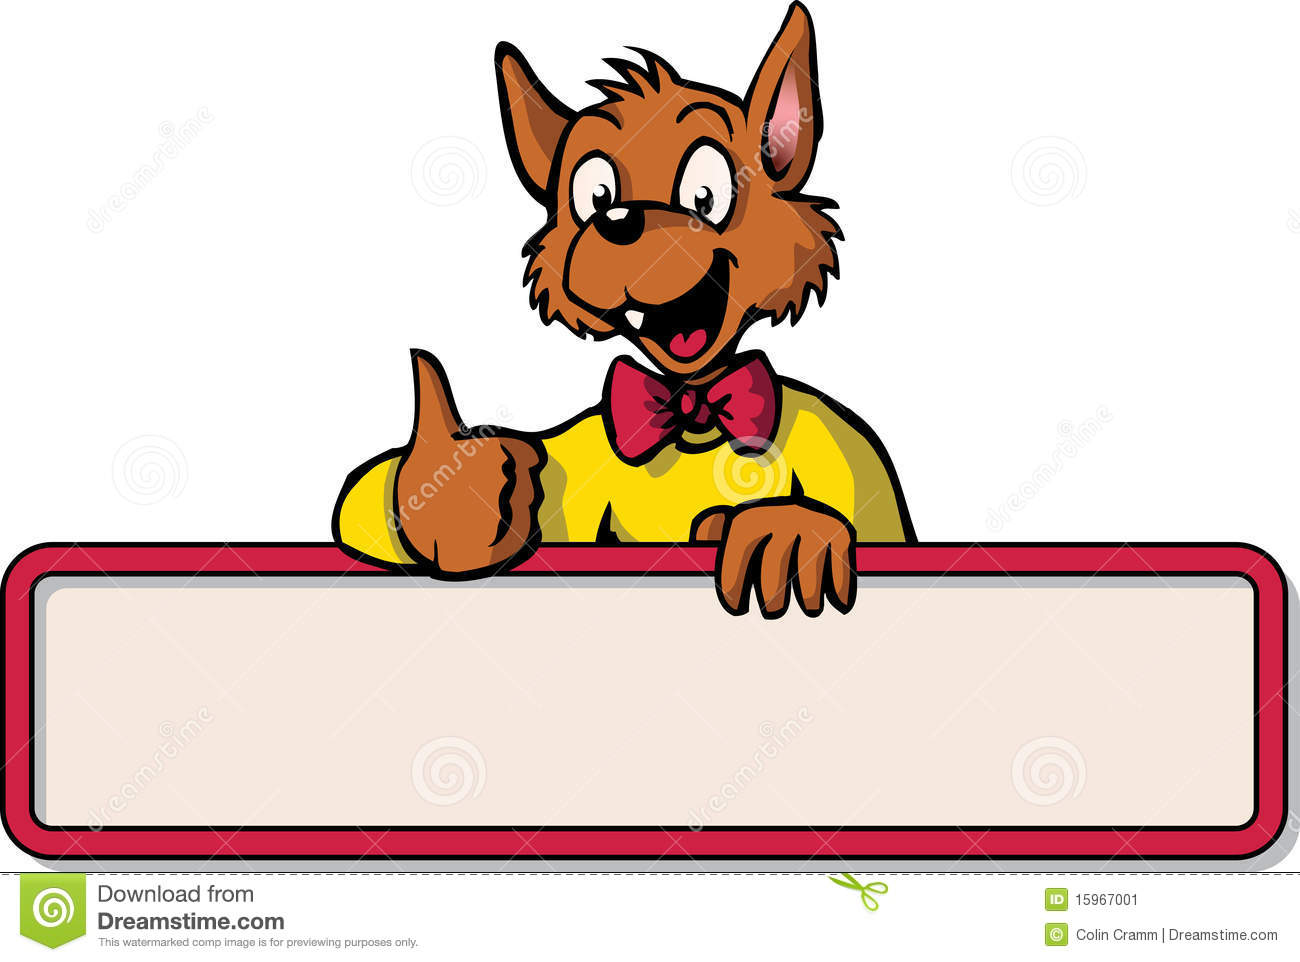 Happy Cartoon Mouse With Bulletin Board Stock Image - Image: 15967001